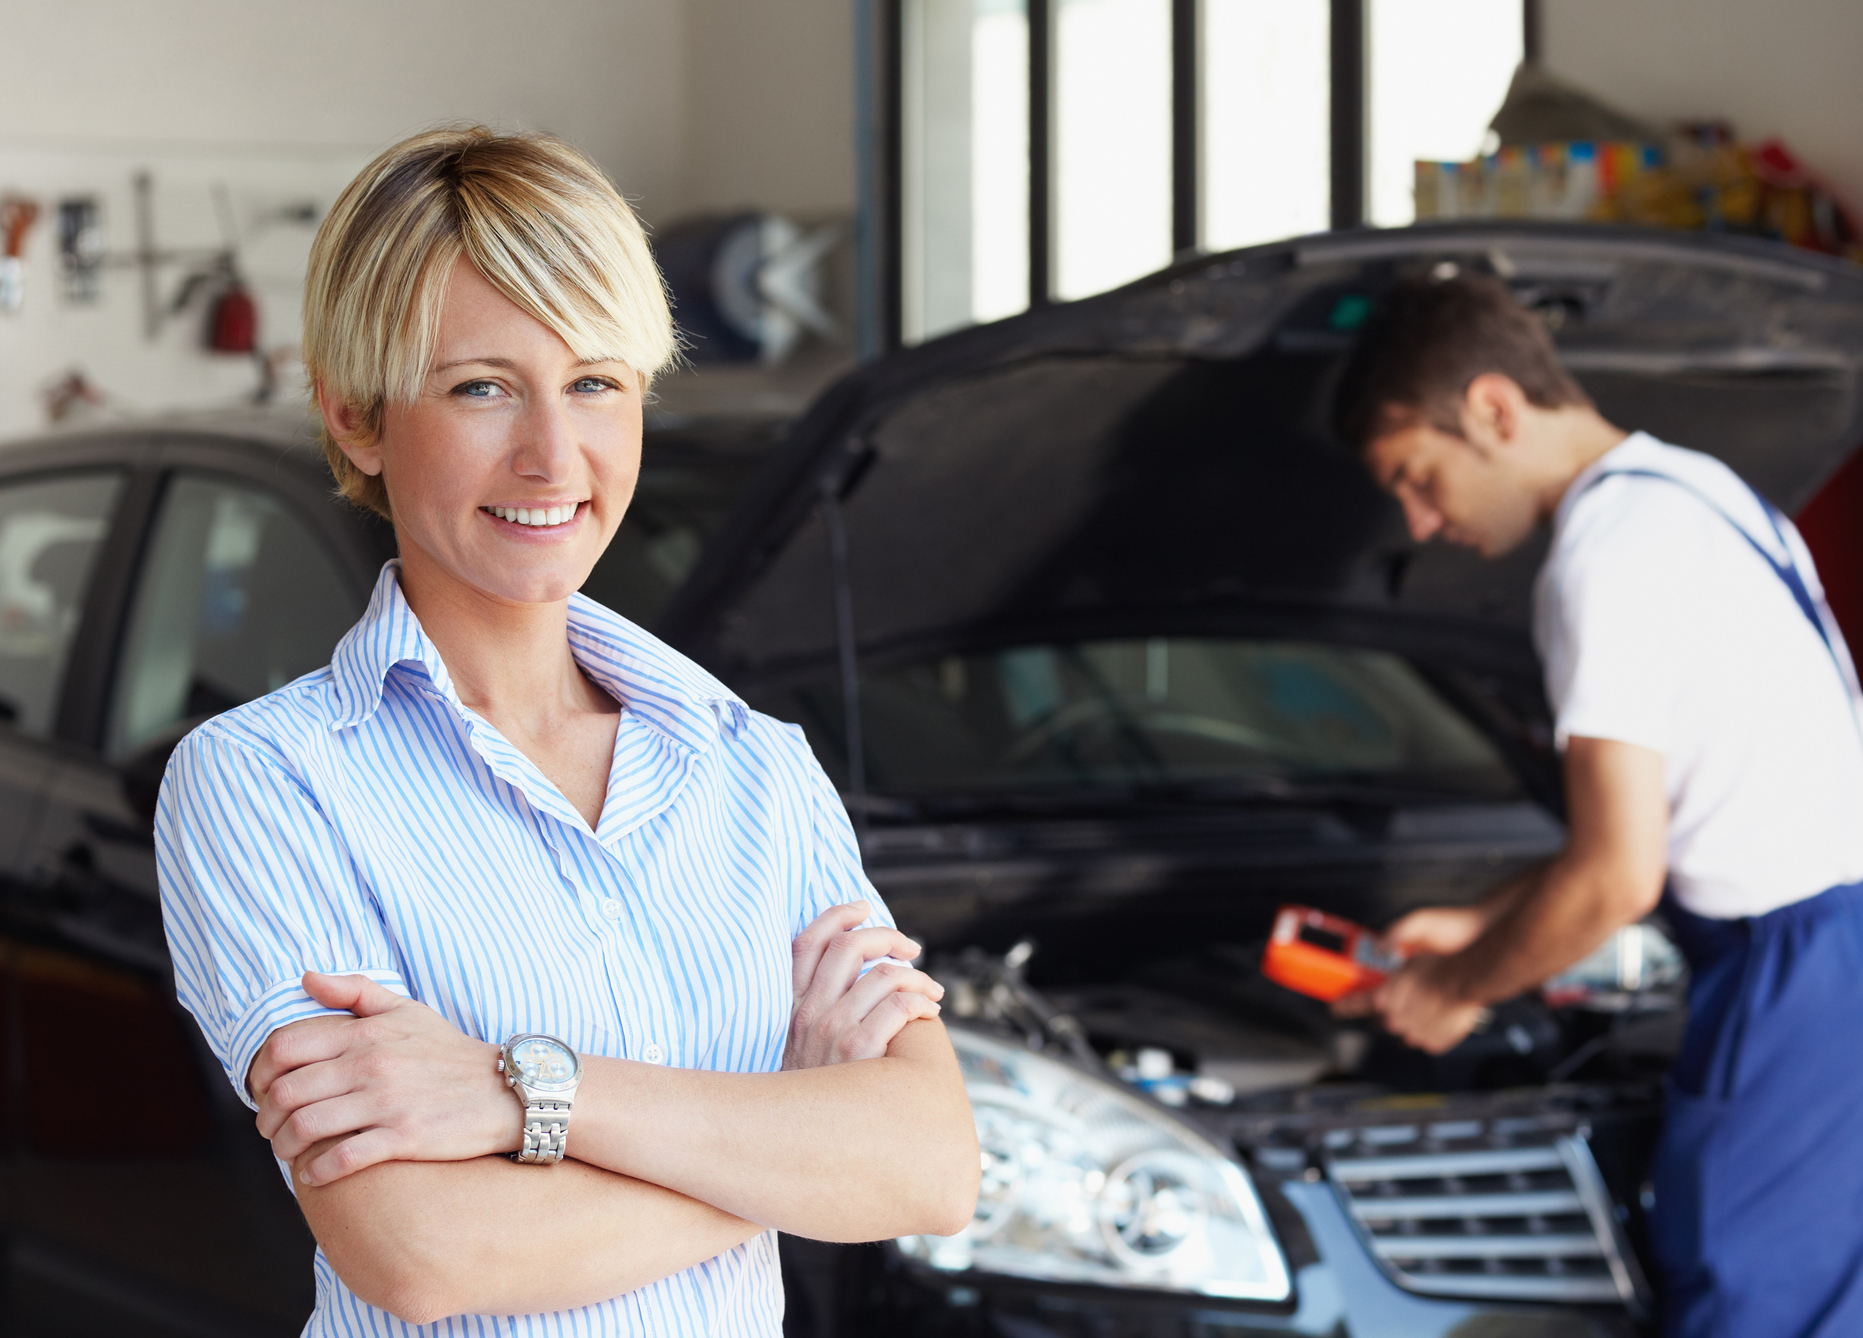 motor mechanics servicing a car